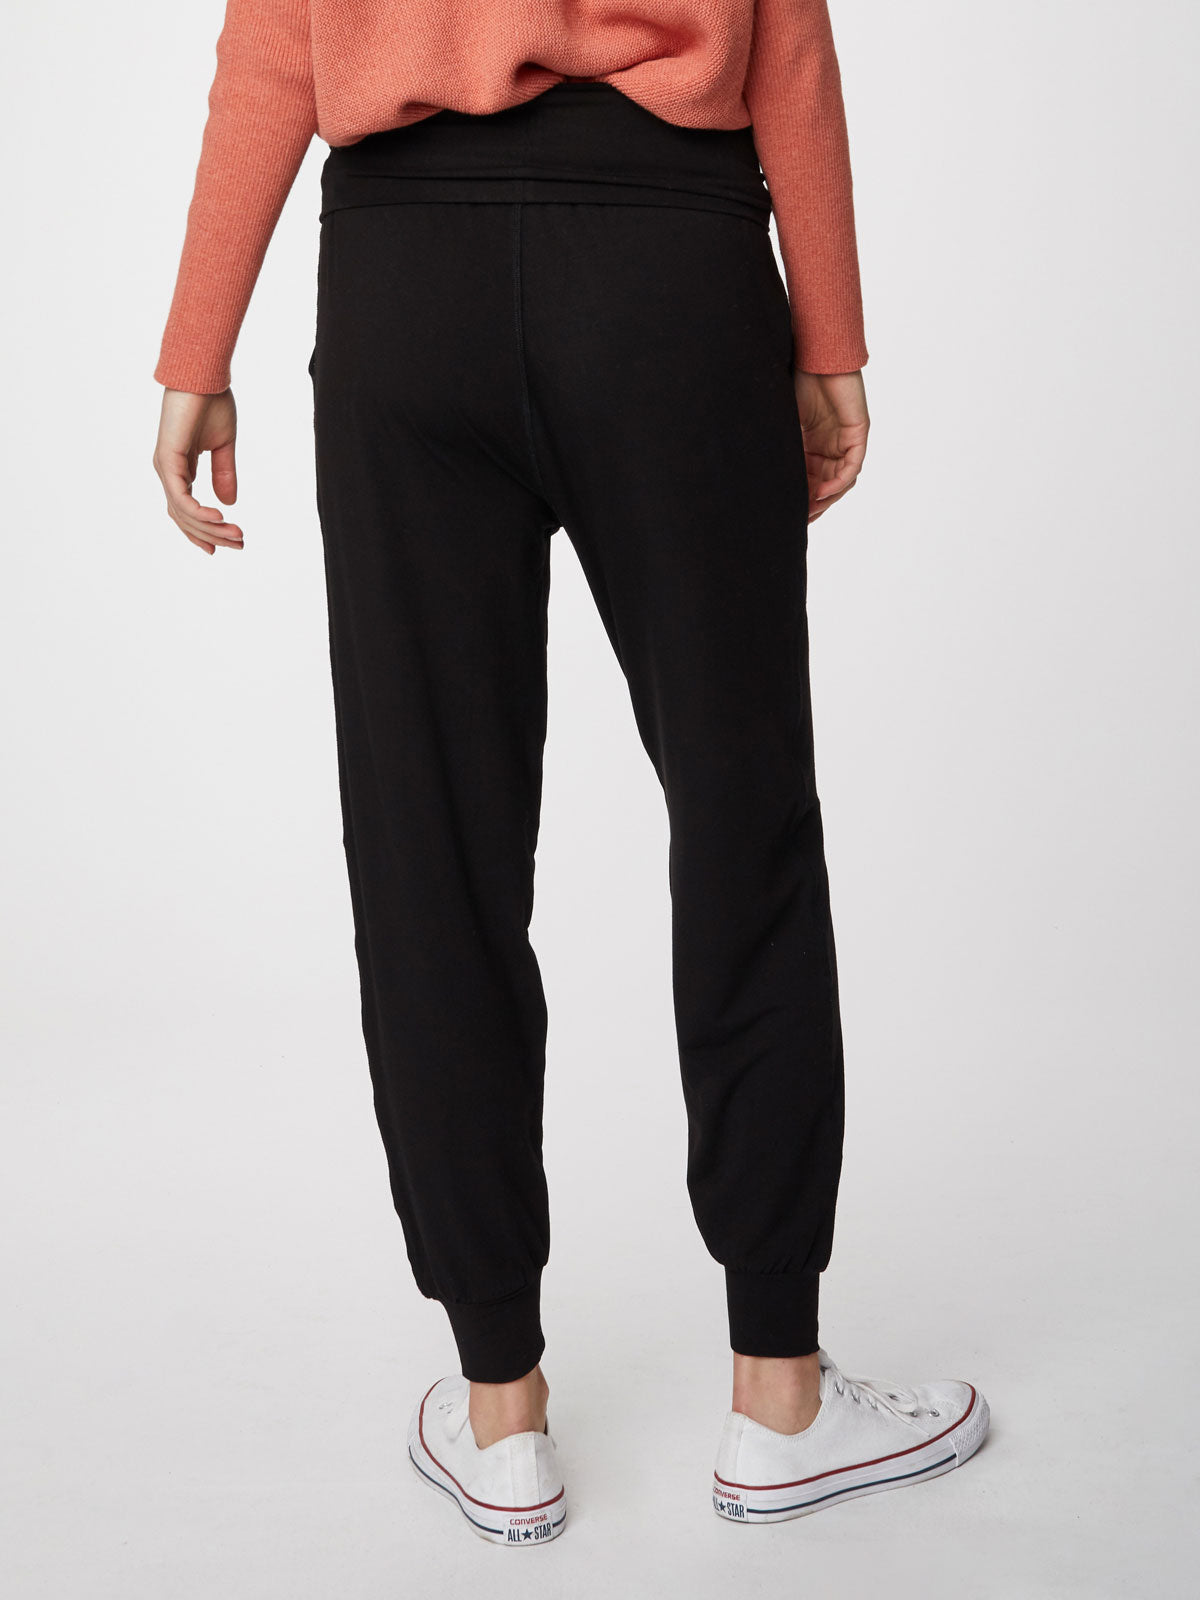 Thought Dashka Slacks for Ladies in Black